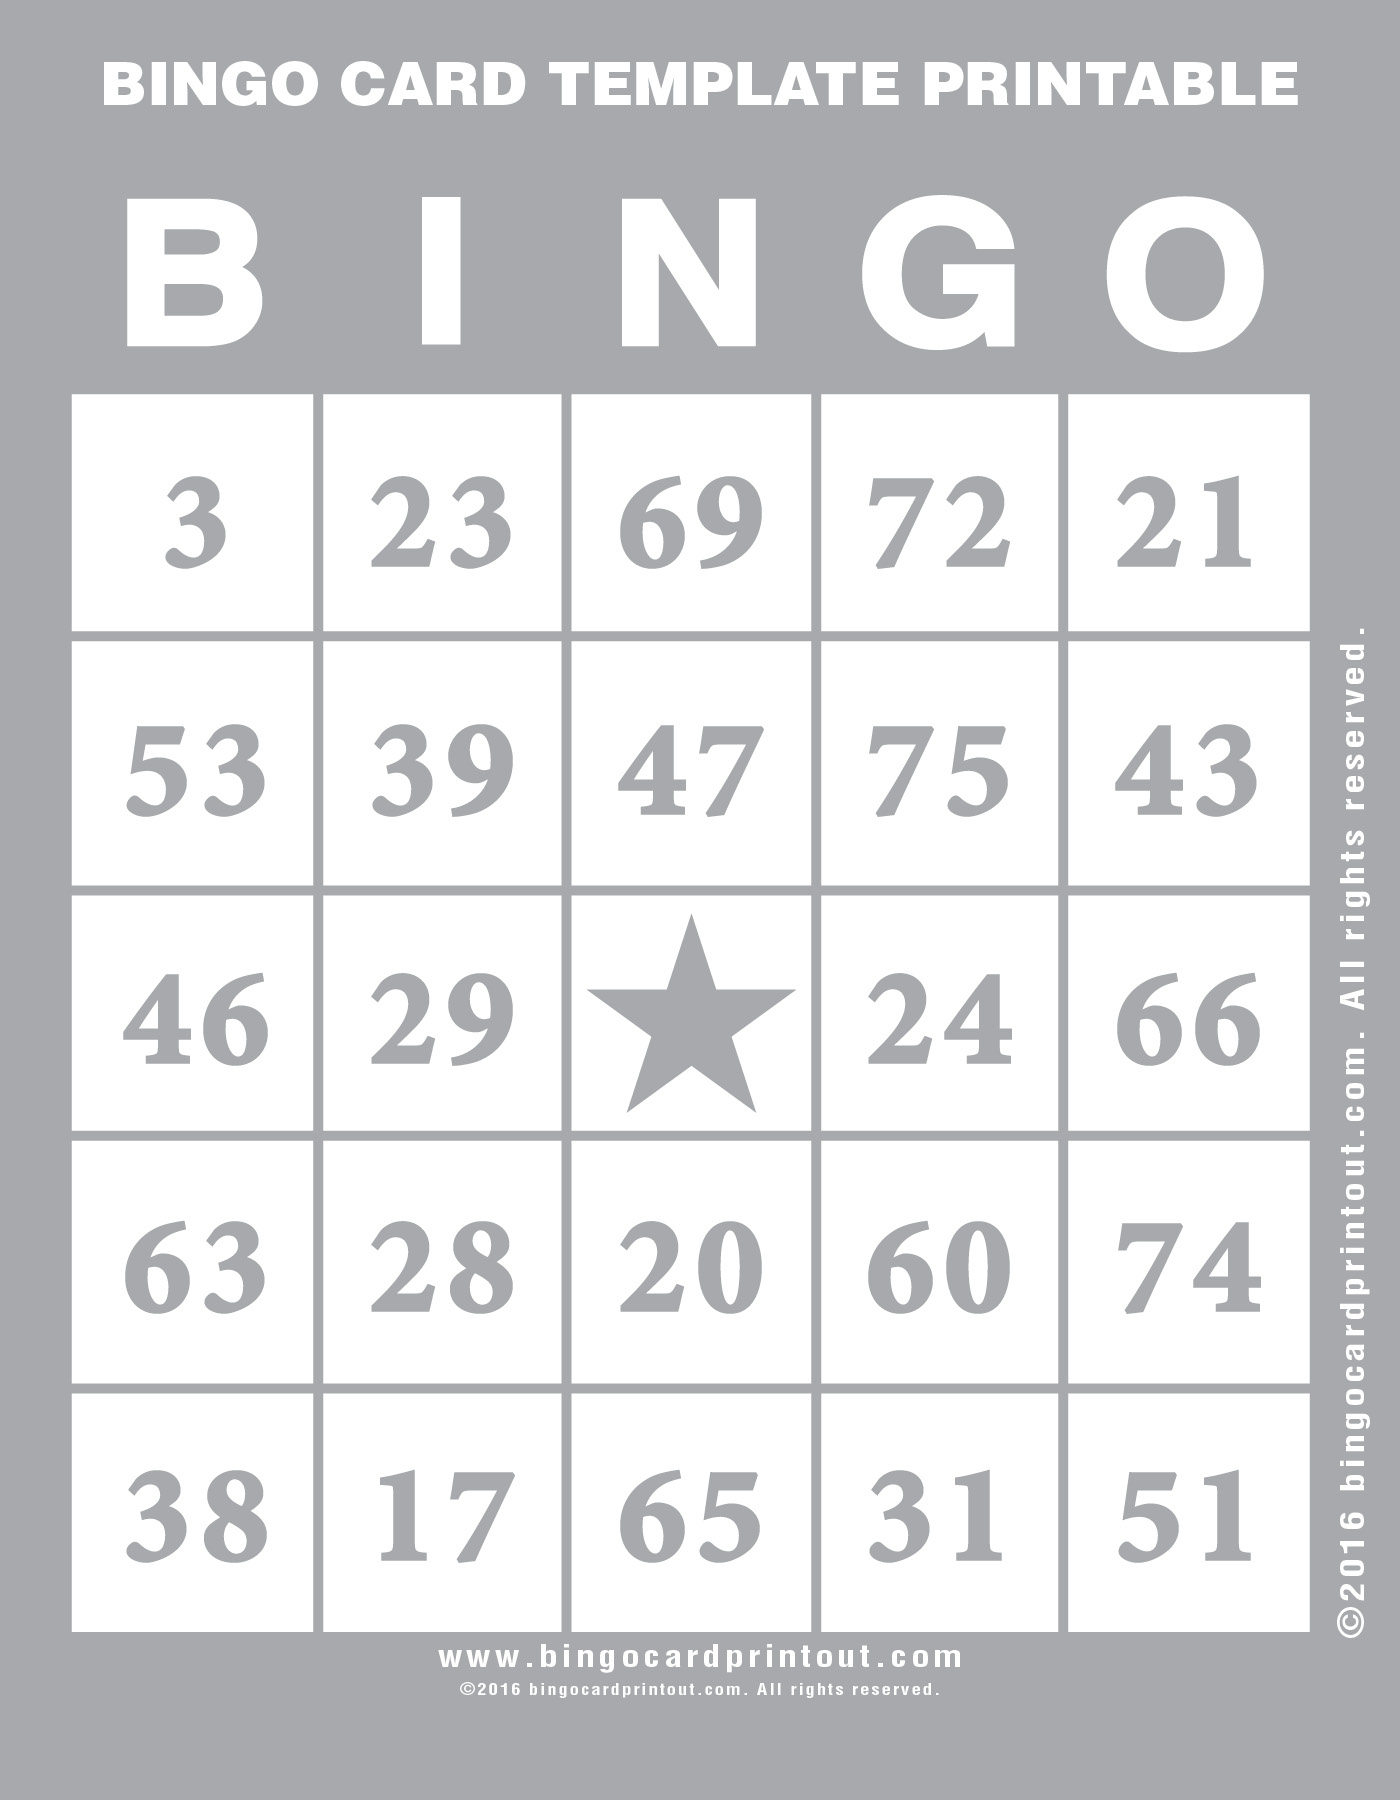 Look no further for your next bingo card template printable .